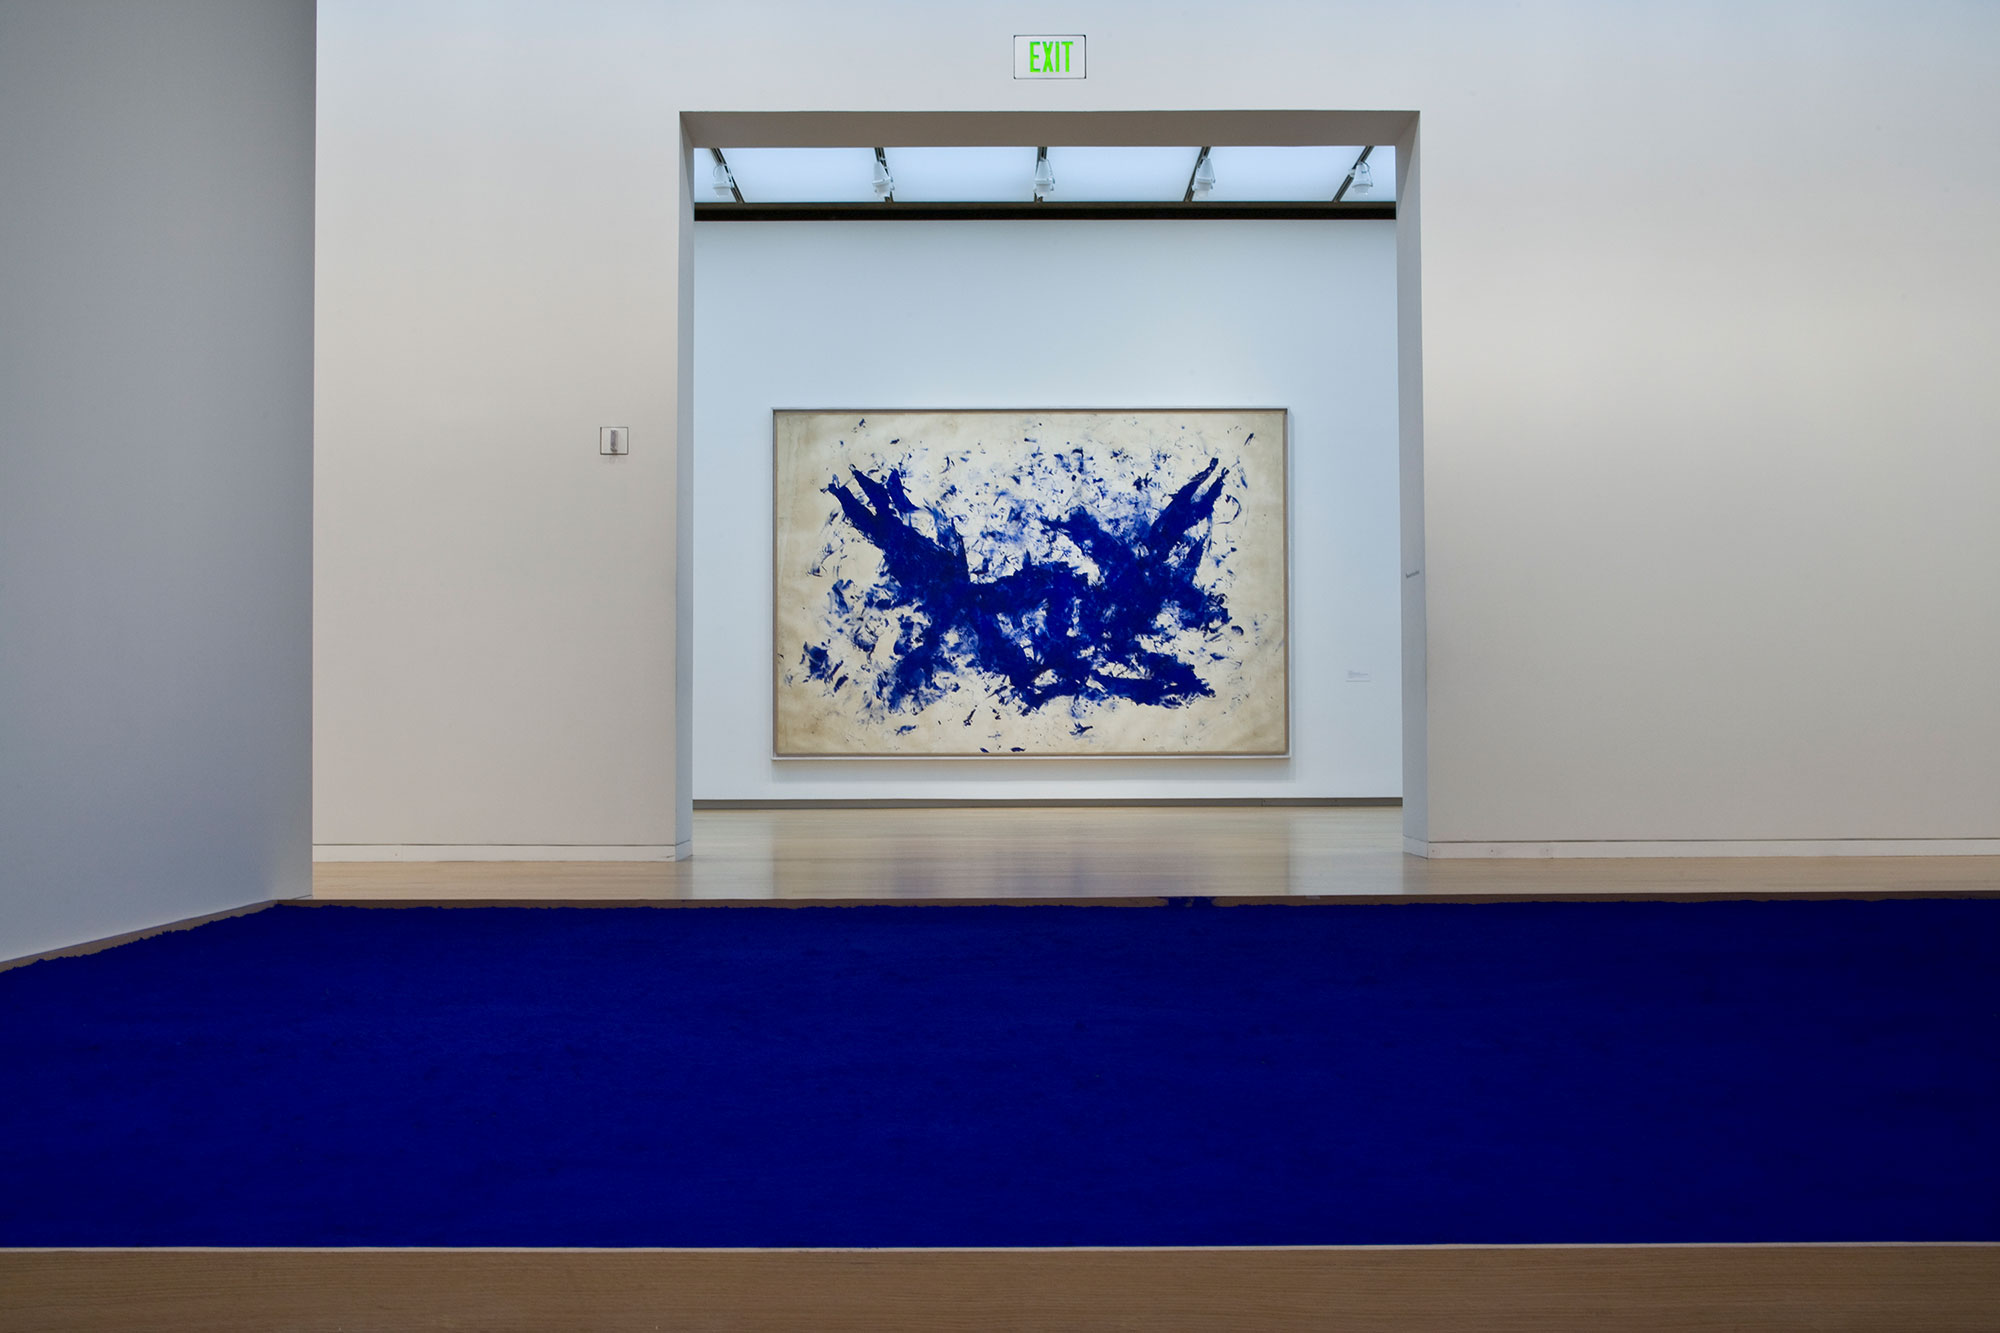 Installation view of Yves Klein works